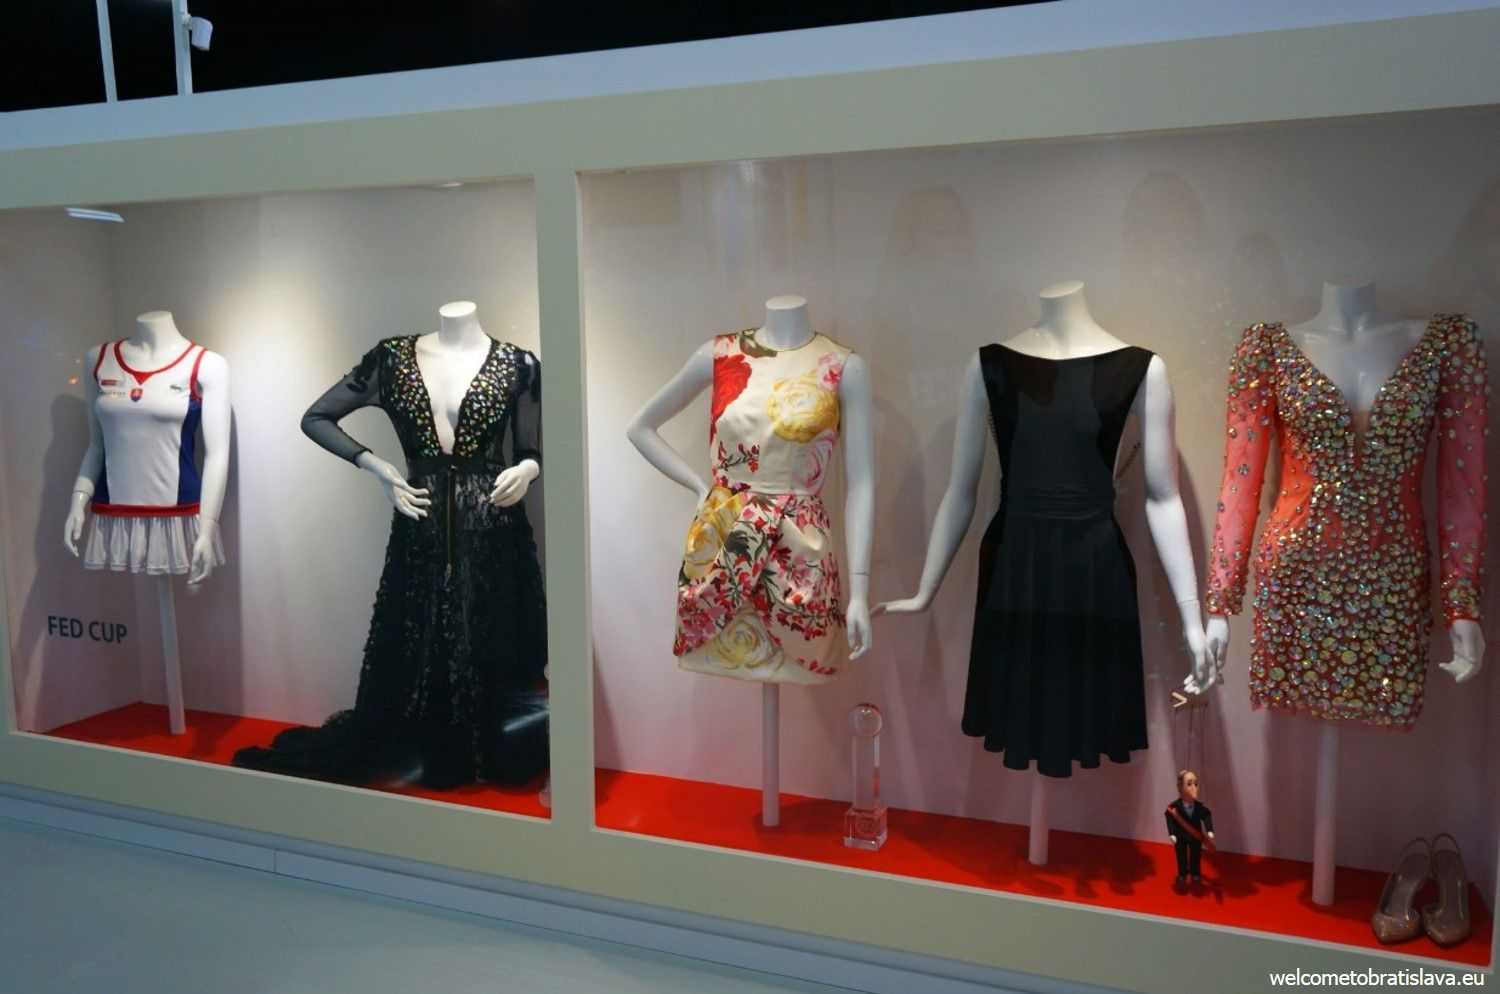 Have a look to the glass cabinets to see her uniforms as well as other dresses from her wardrobe.